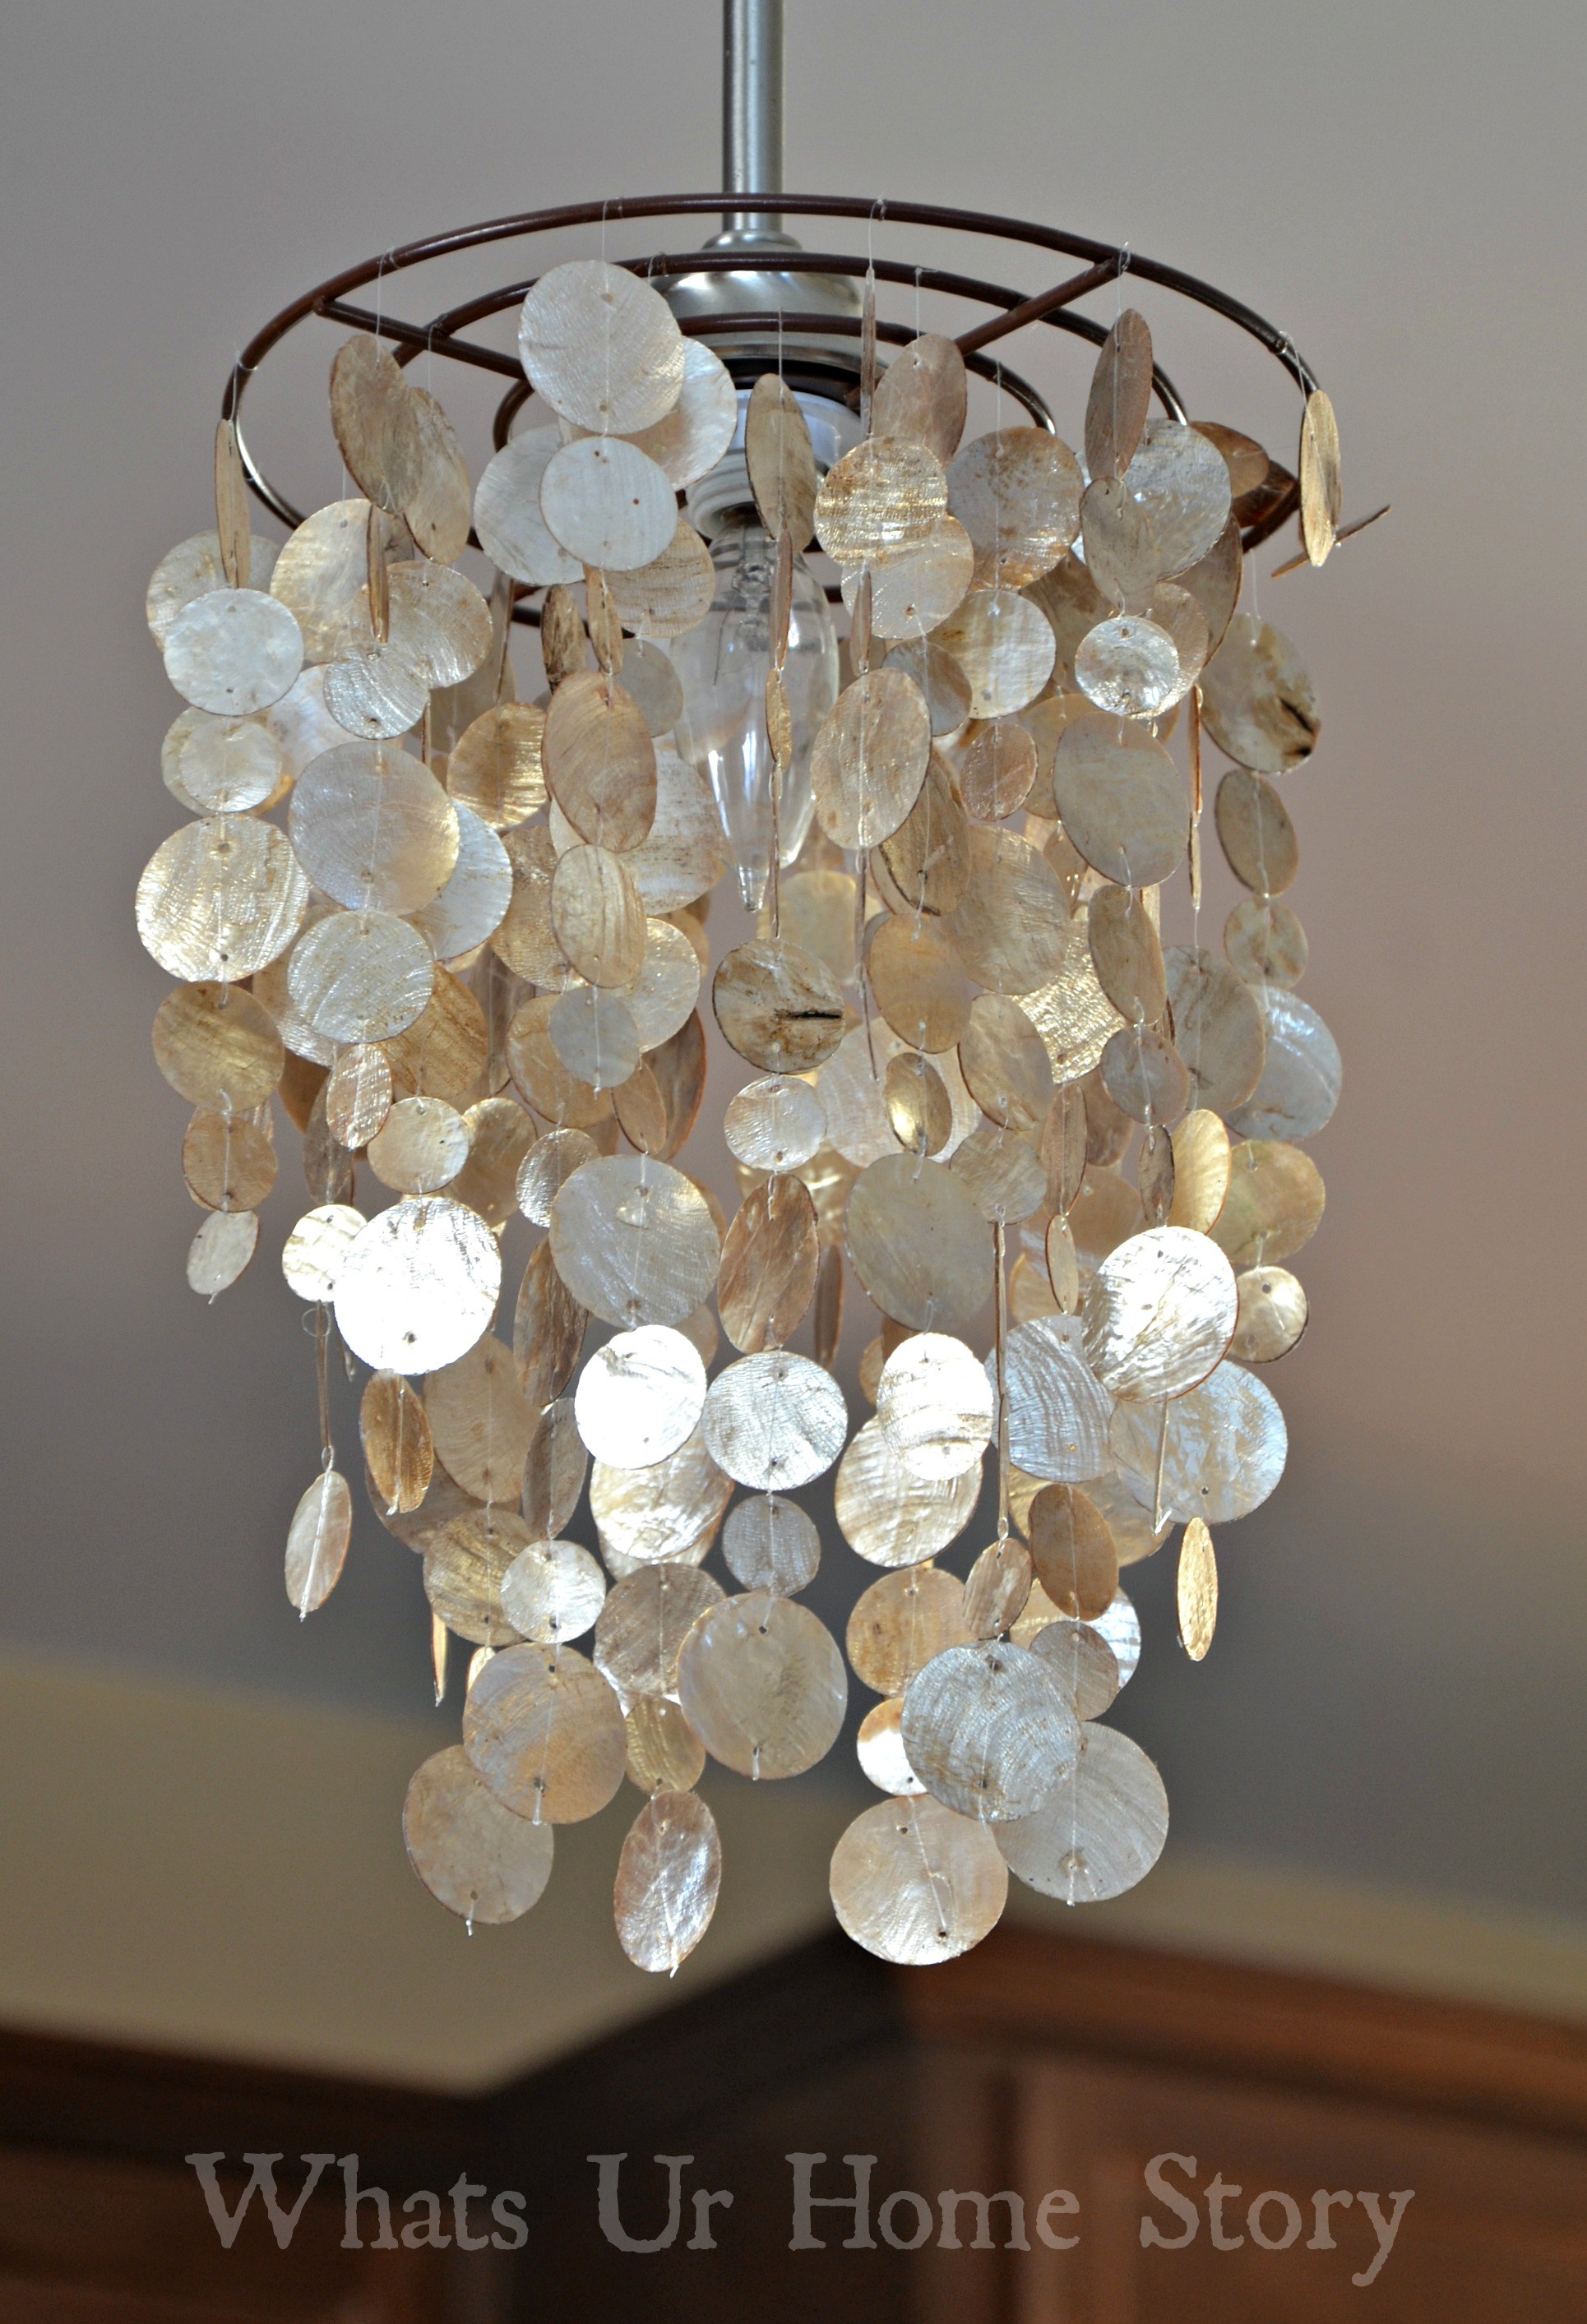 Alluring capiz shells wall mirror gold with light capiz shells for your home lighting ideas